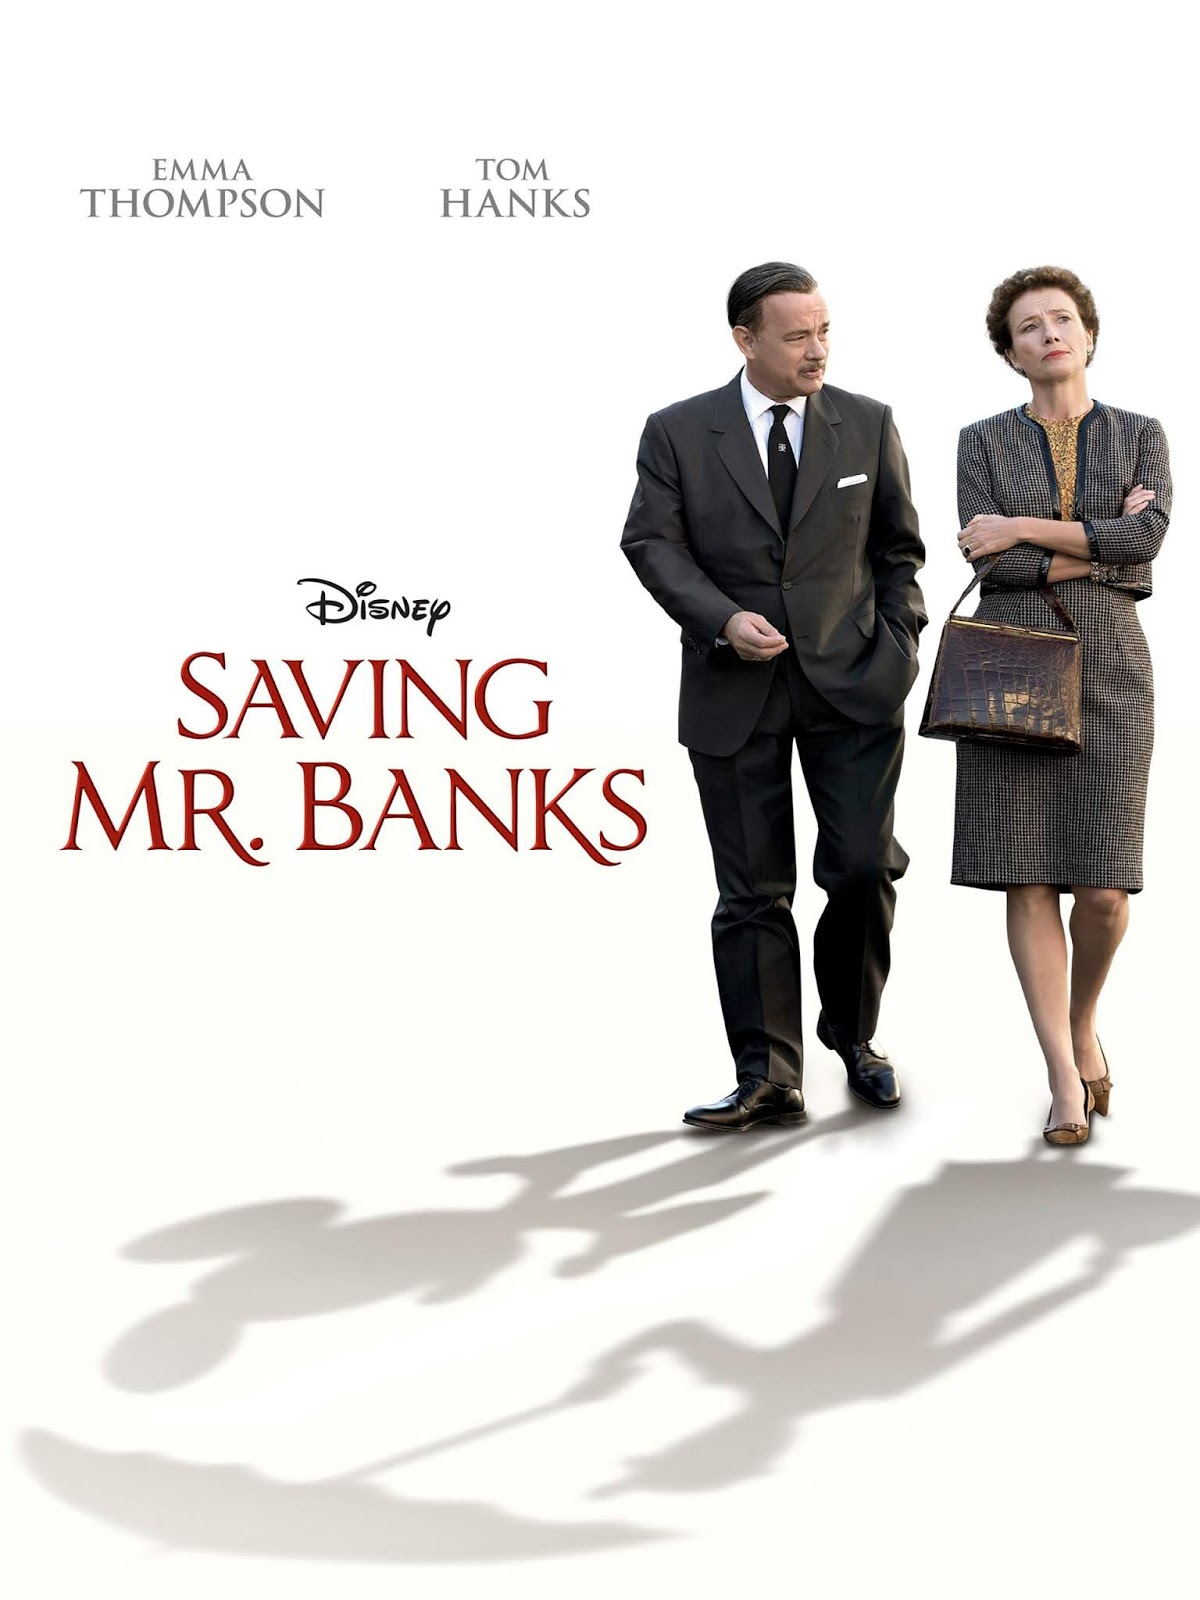 is saving mr banks accurate